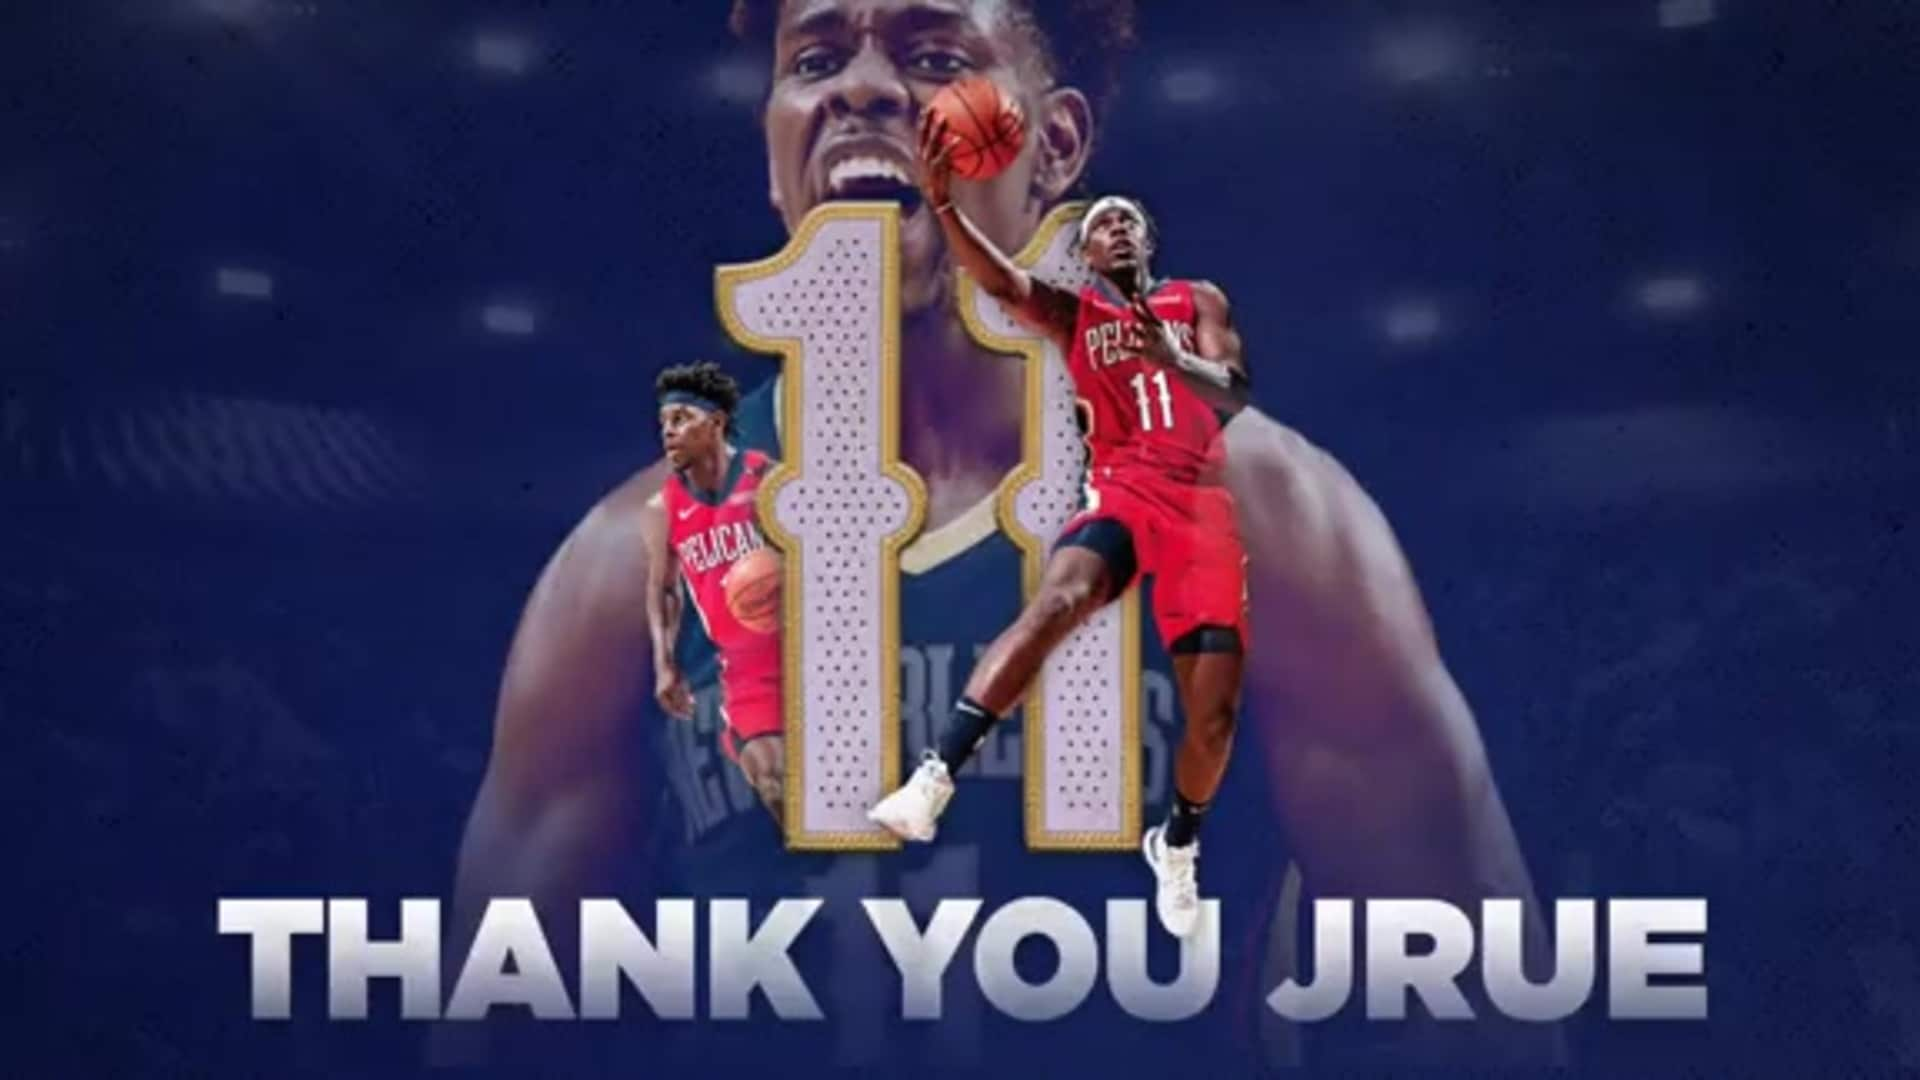 THANK YOU JRUE: Pelicans wish Jrue Holiday the best